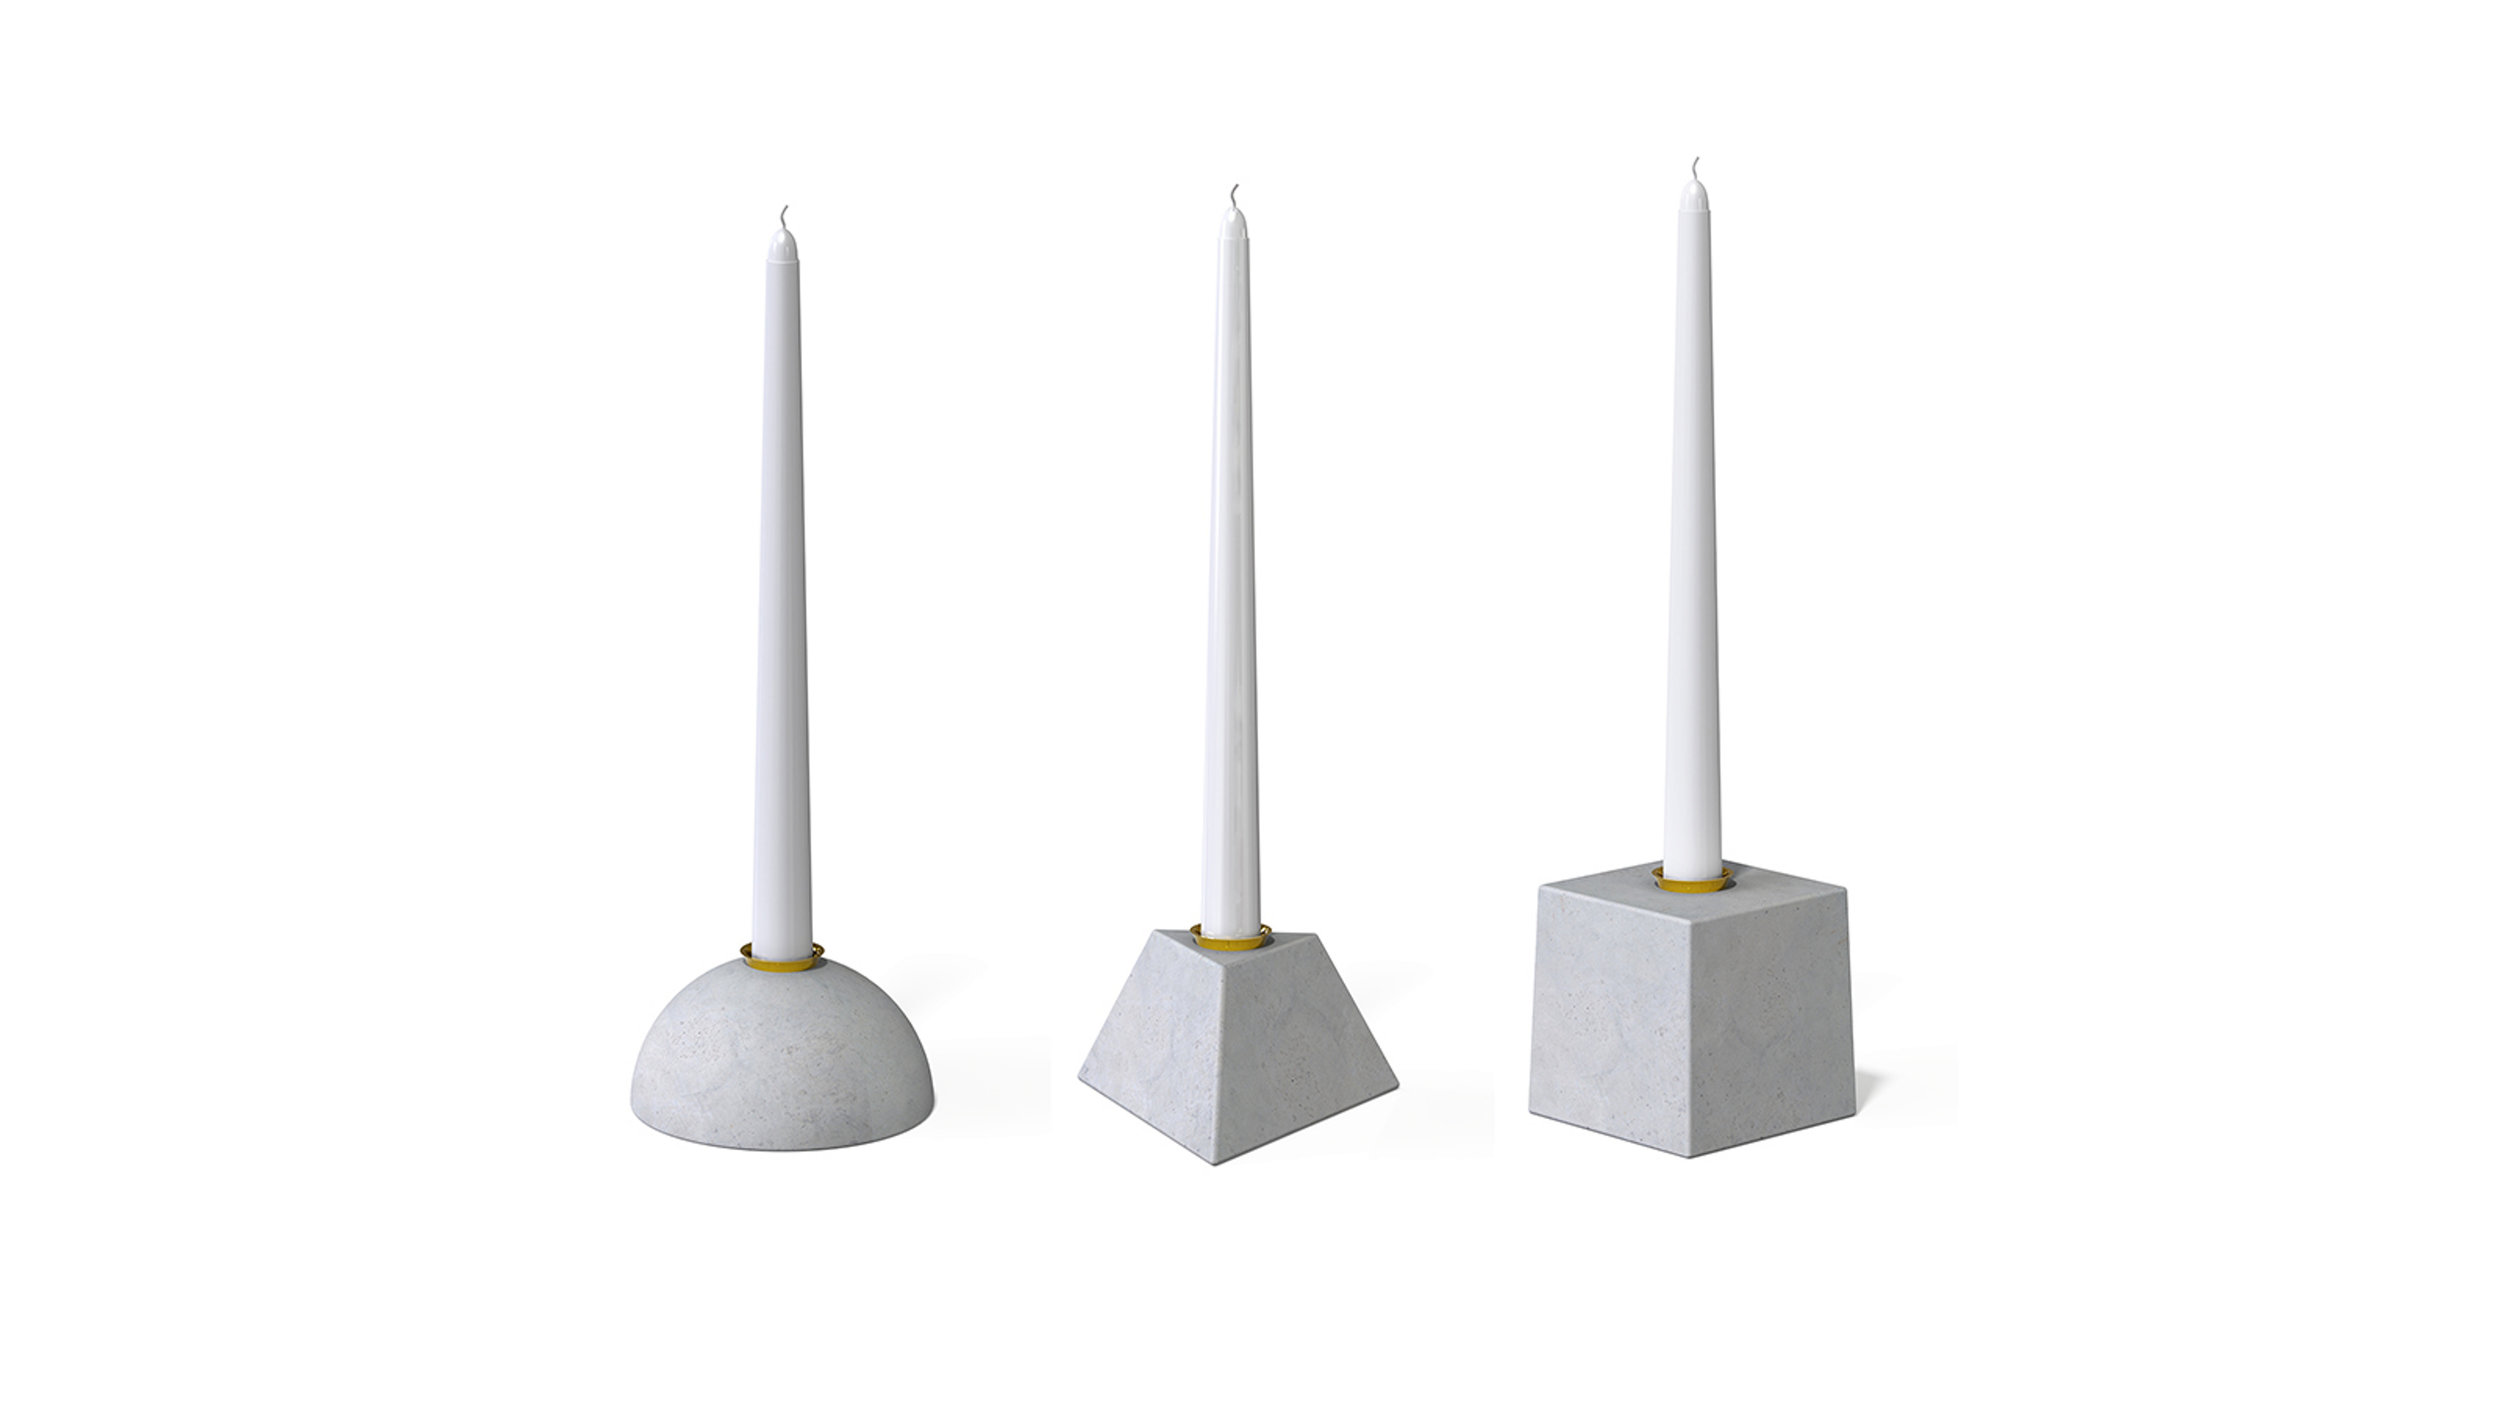 James-Plant-Design-Studio-Geometrics-Candle-Holders-1.jpg